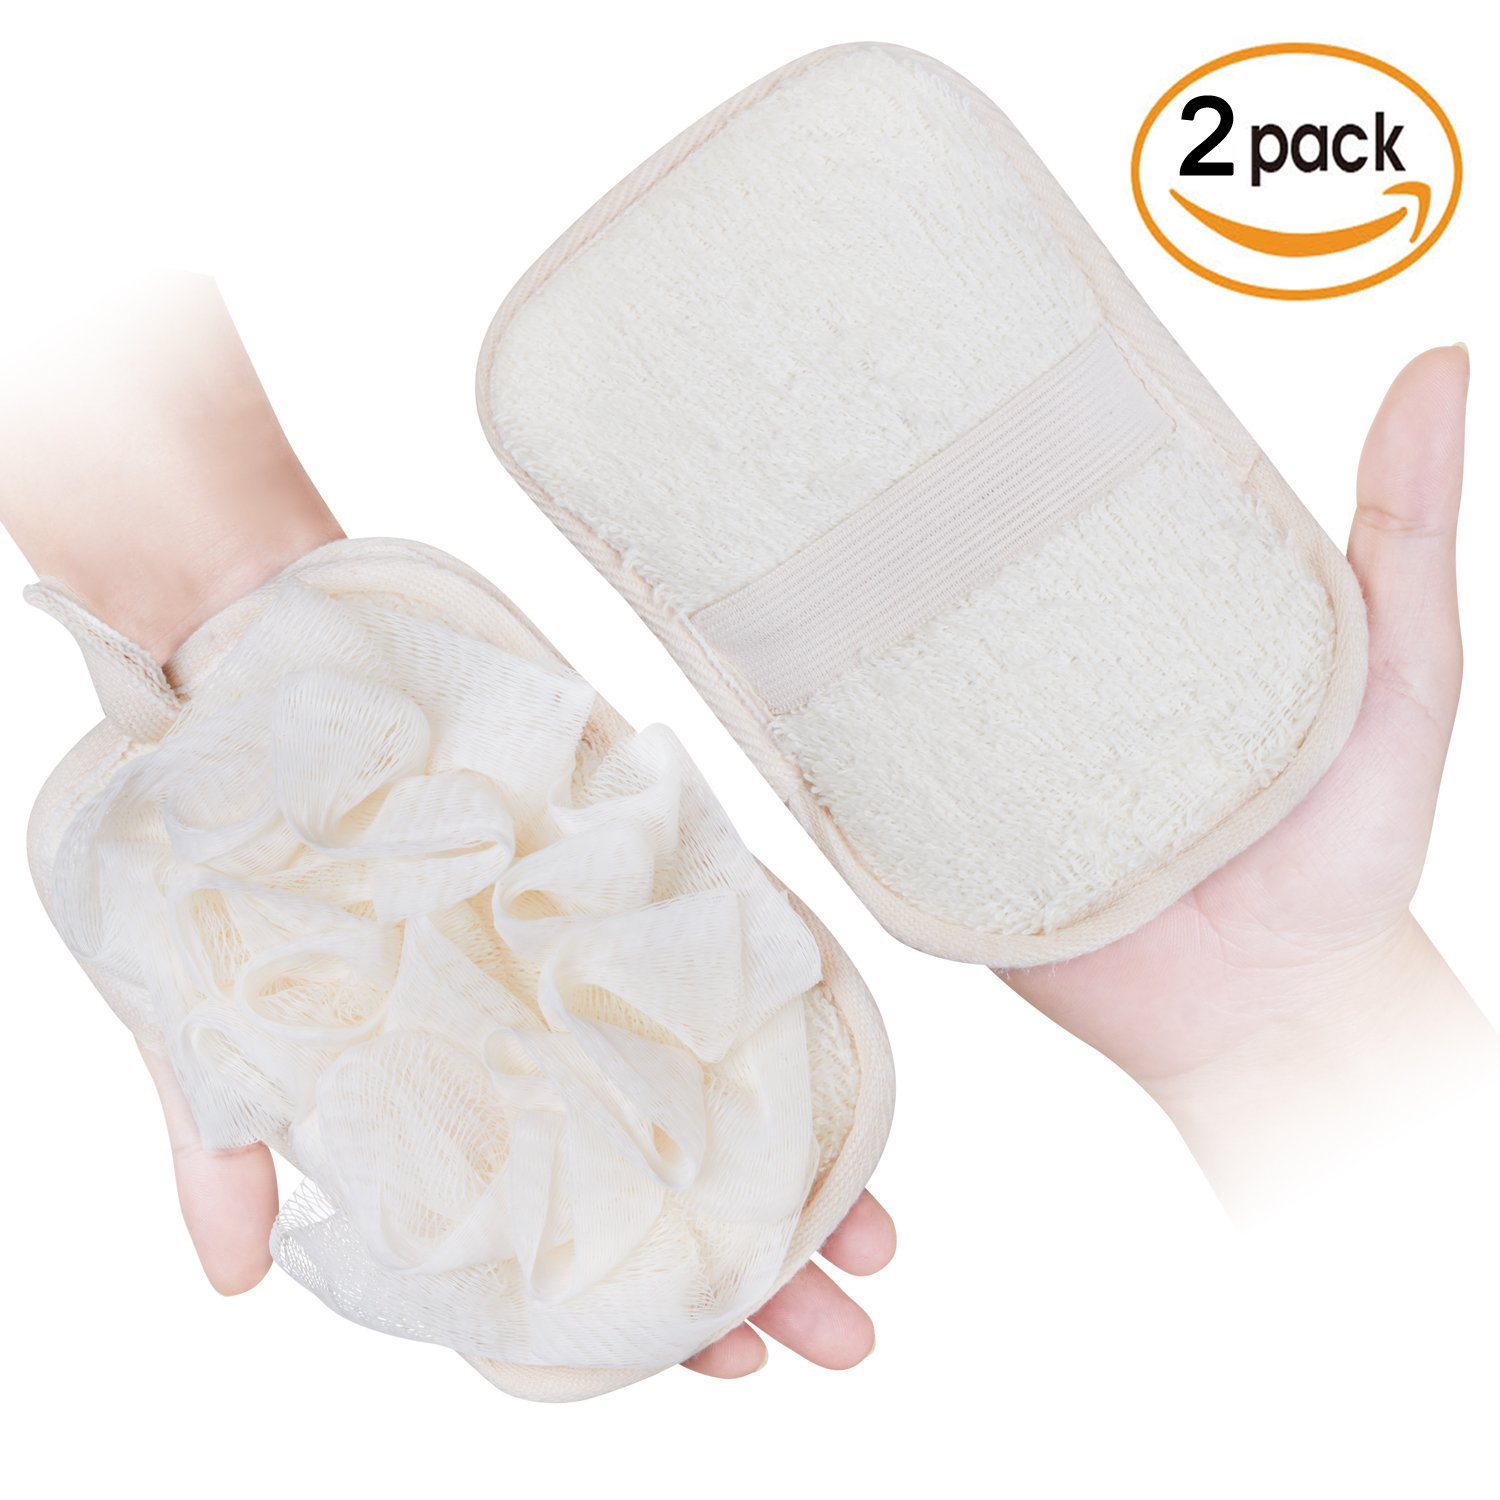 mikimini Bath Mitt for Women, Bath Pouf Mesh Brushes 2 Packs Set | Loofah Sponge & Exfoliating Pad 2 in 1 Professional Design | Exfoliating Gently with the Elastic Hand Strap or Wearing the Mitten by mikimini (Image #1)